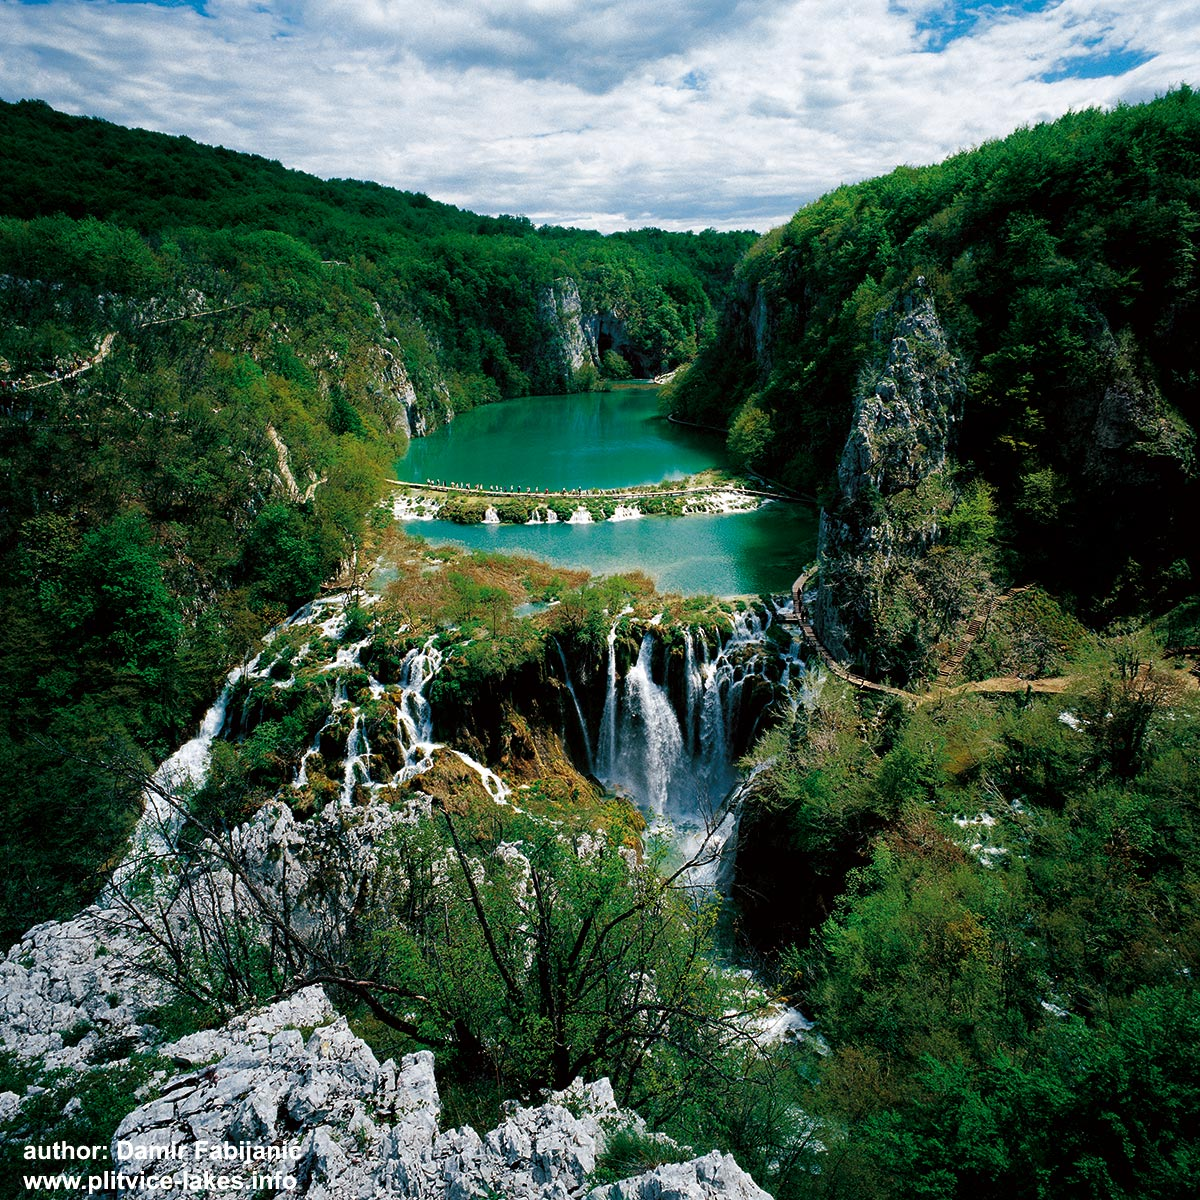 Panorama of Lower Lakes @ Plitvicka Jezera